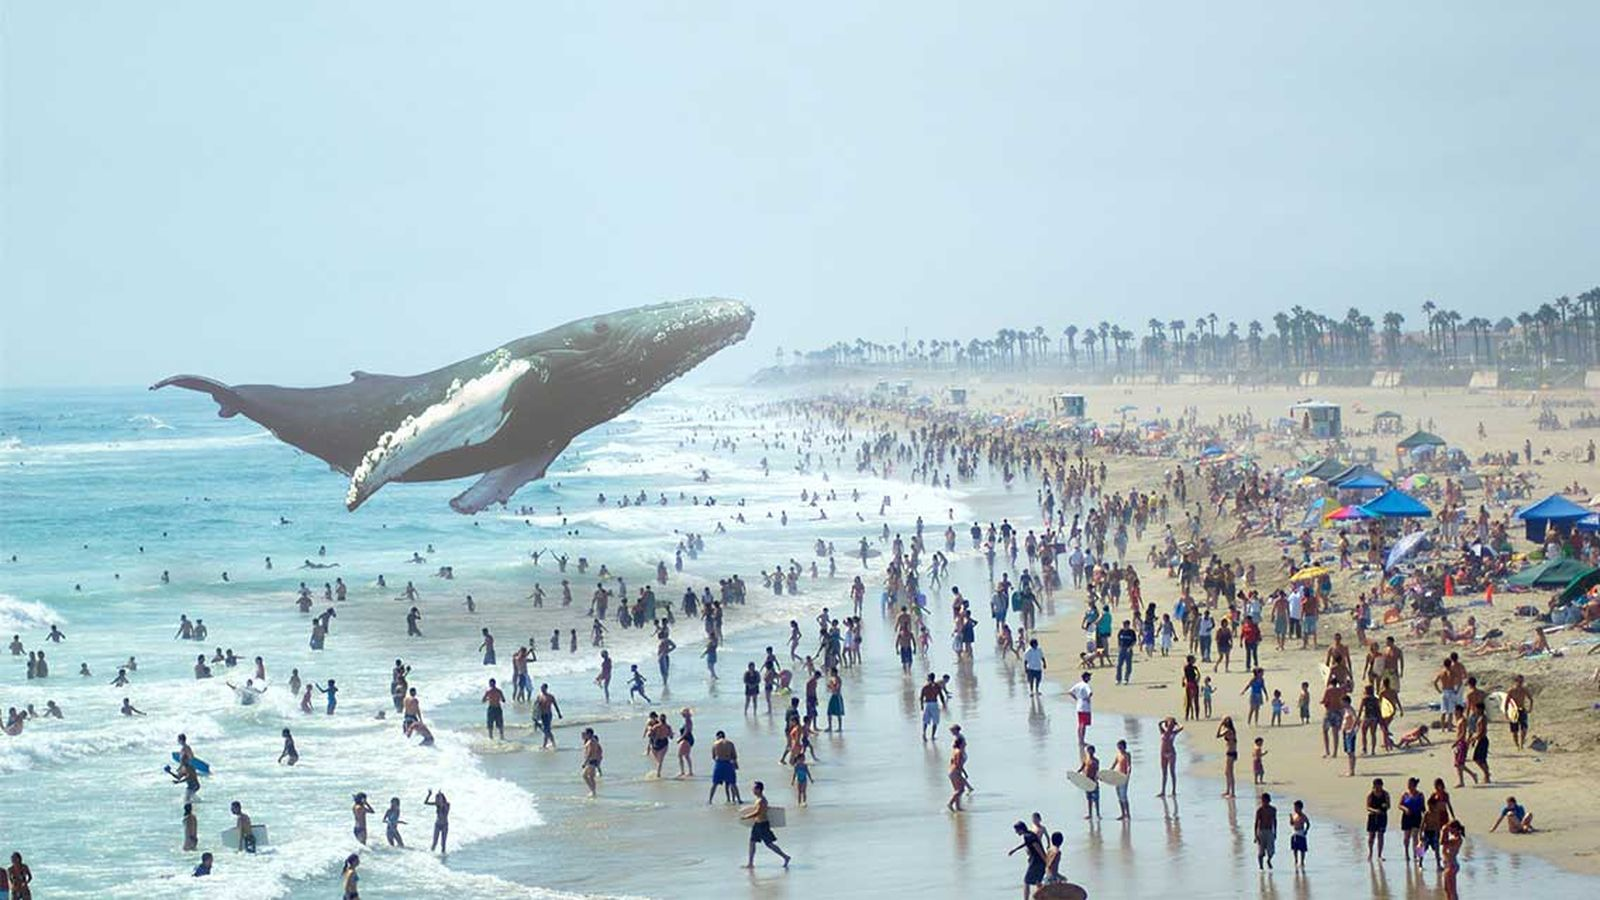 So what is Magic Leap?